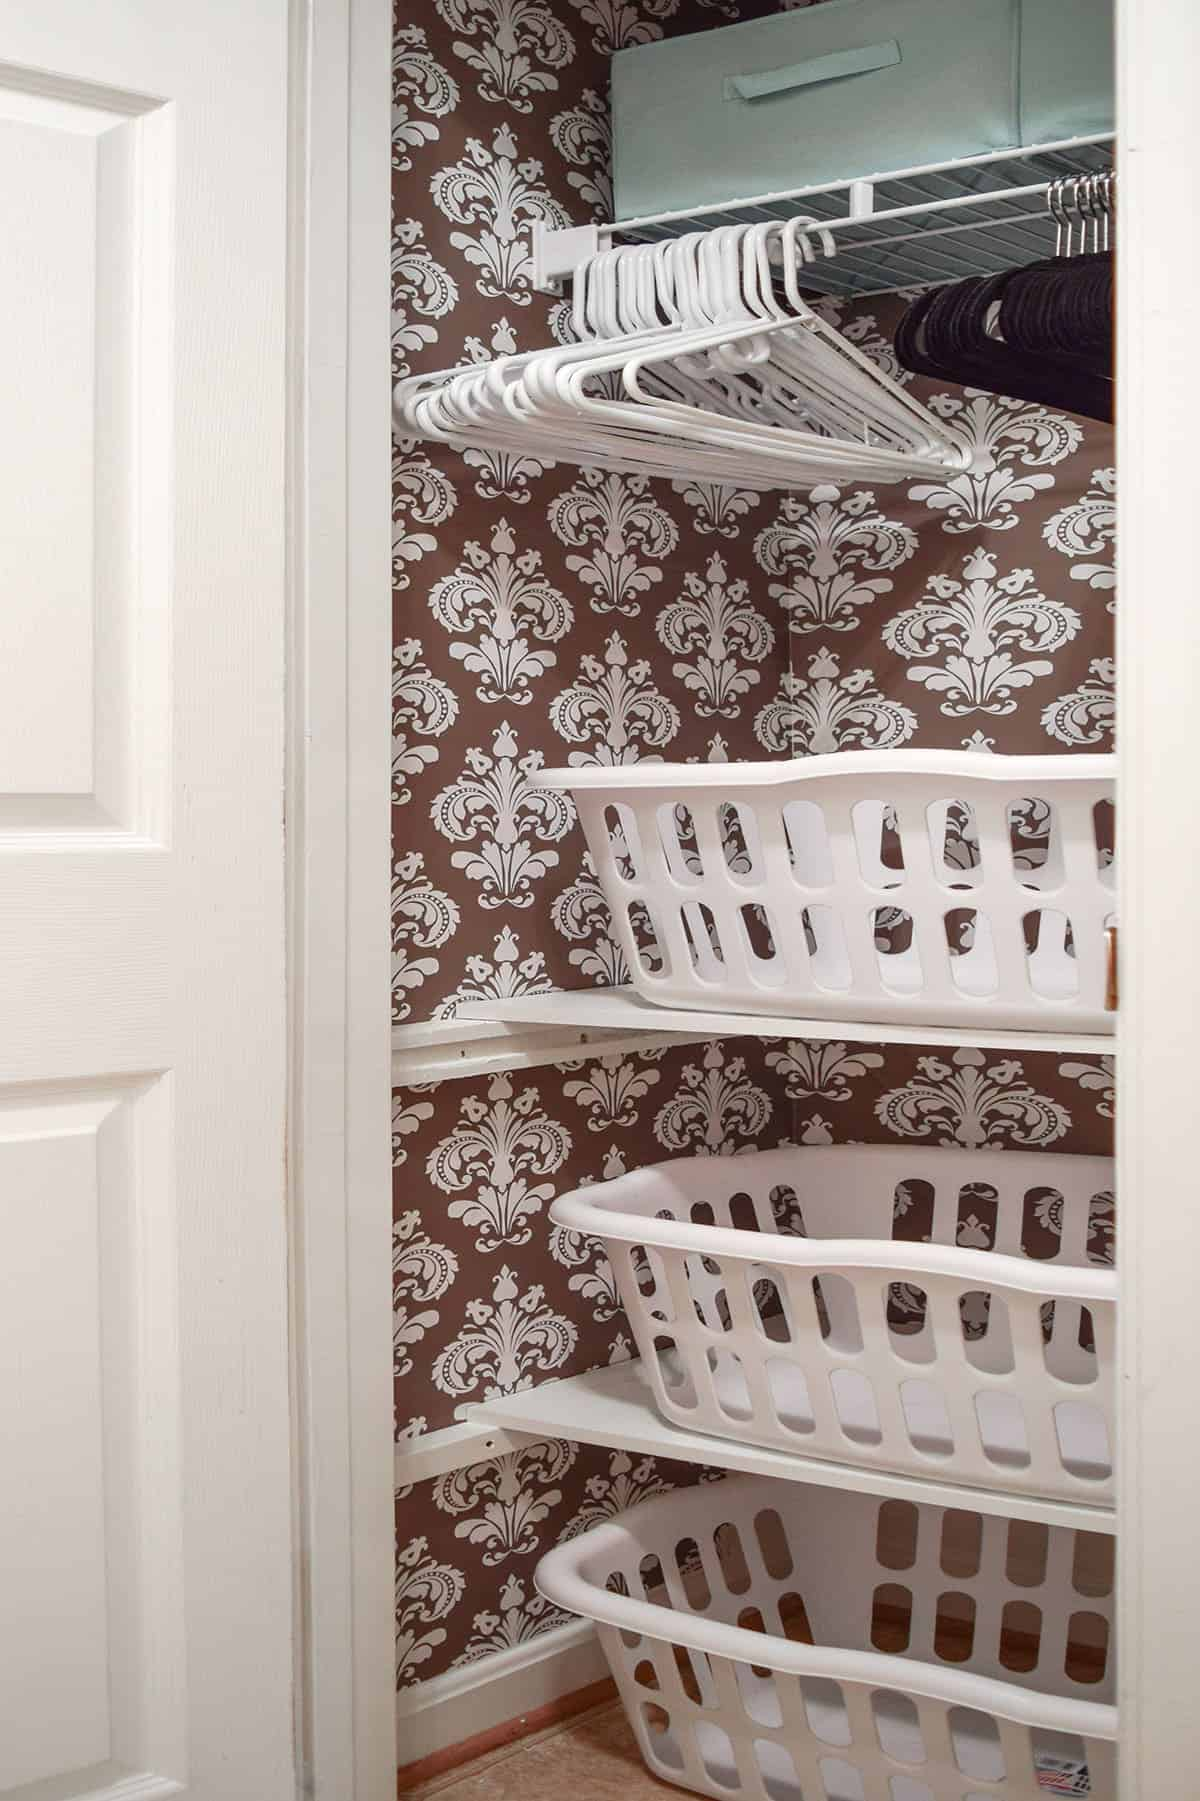 whole laundry closet makeover. This closet with shelves holds laundry baskets for sorting.